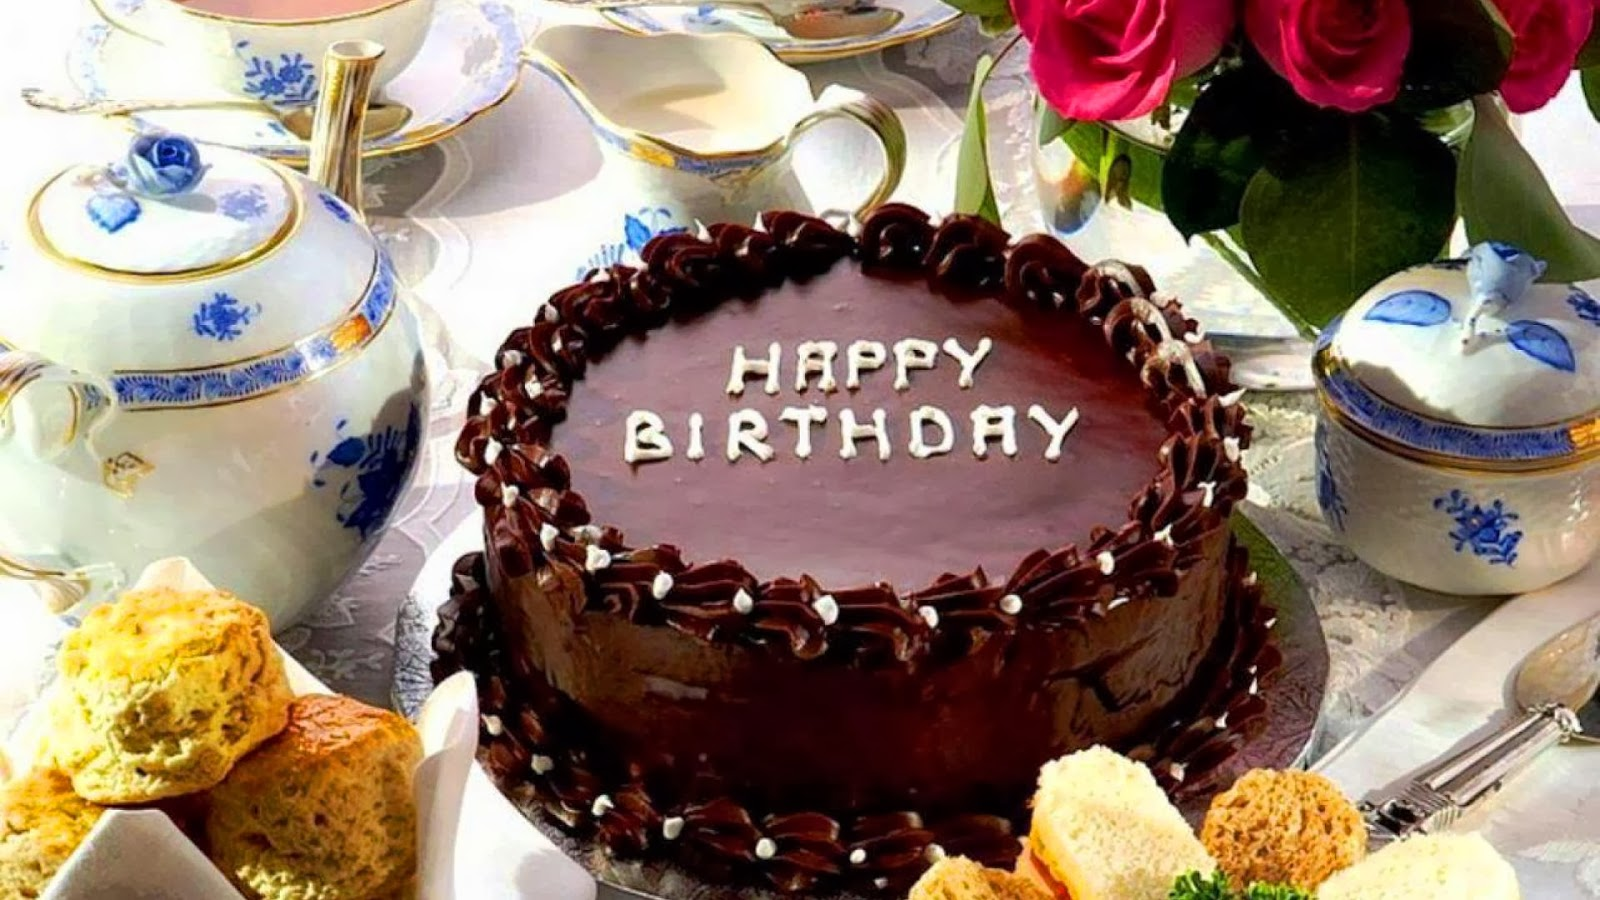 Free Download Hd Images Of Birthday Cake : Chocolate Cake HD Wallpapers Free Download ~ Unique Wallpapers